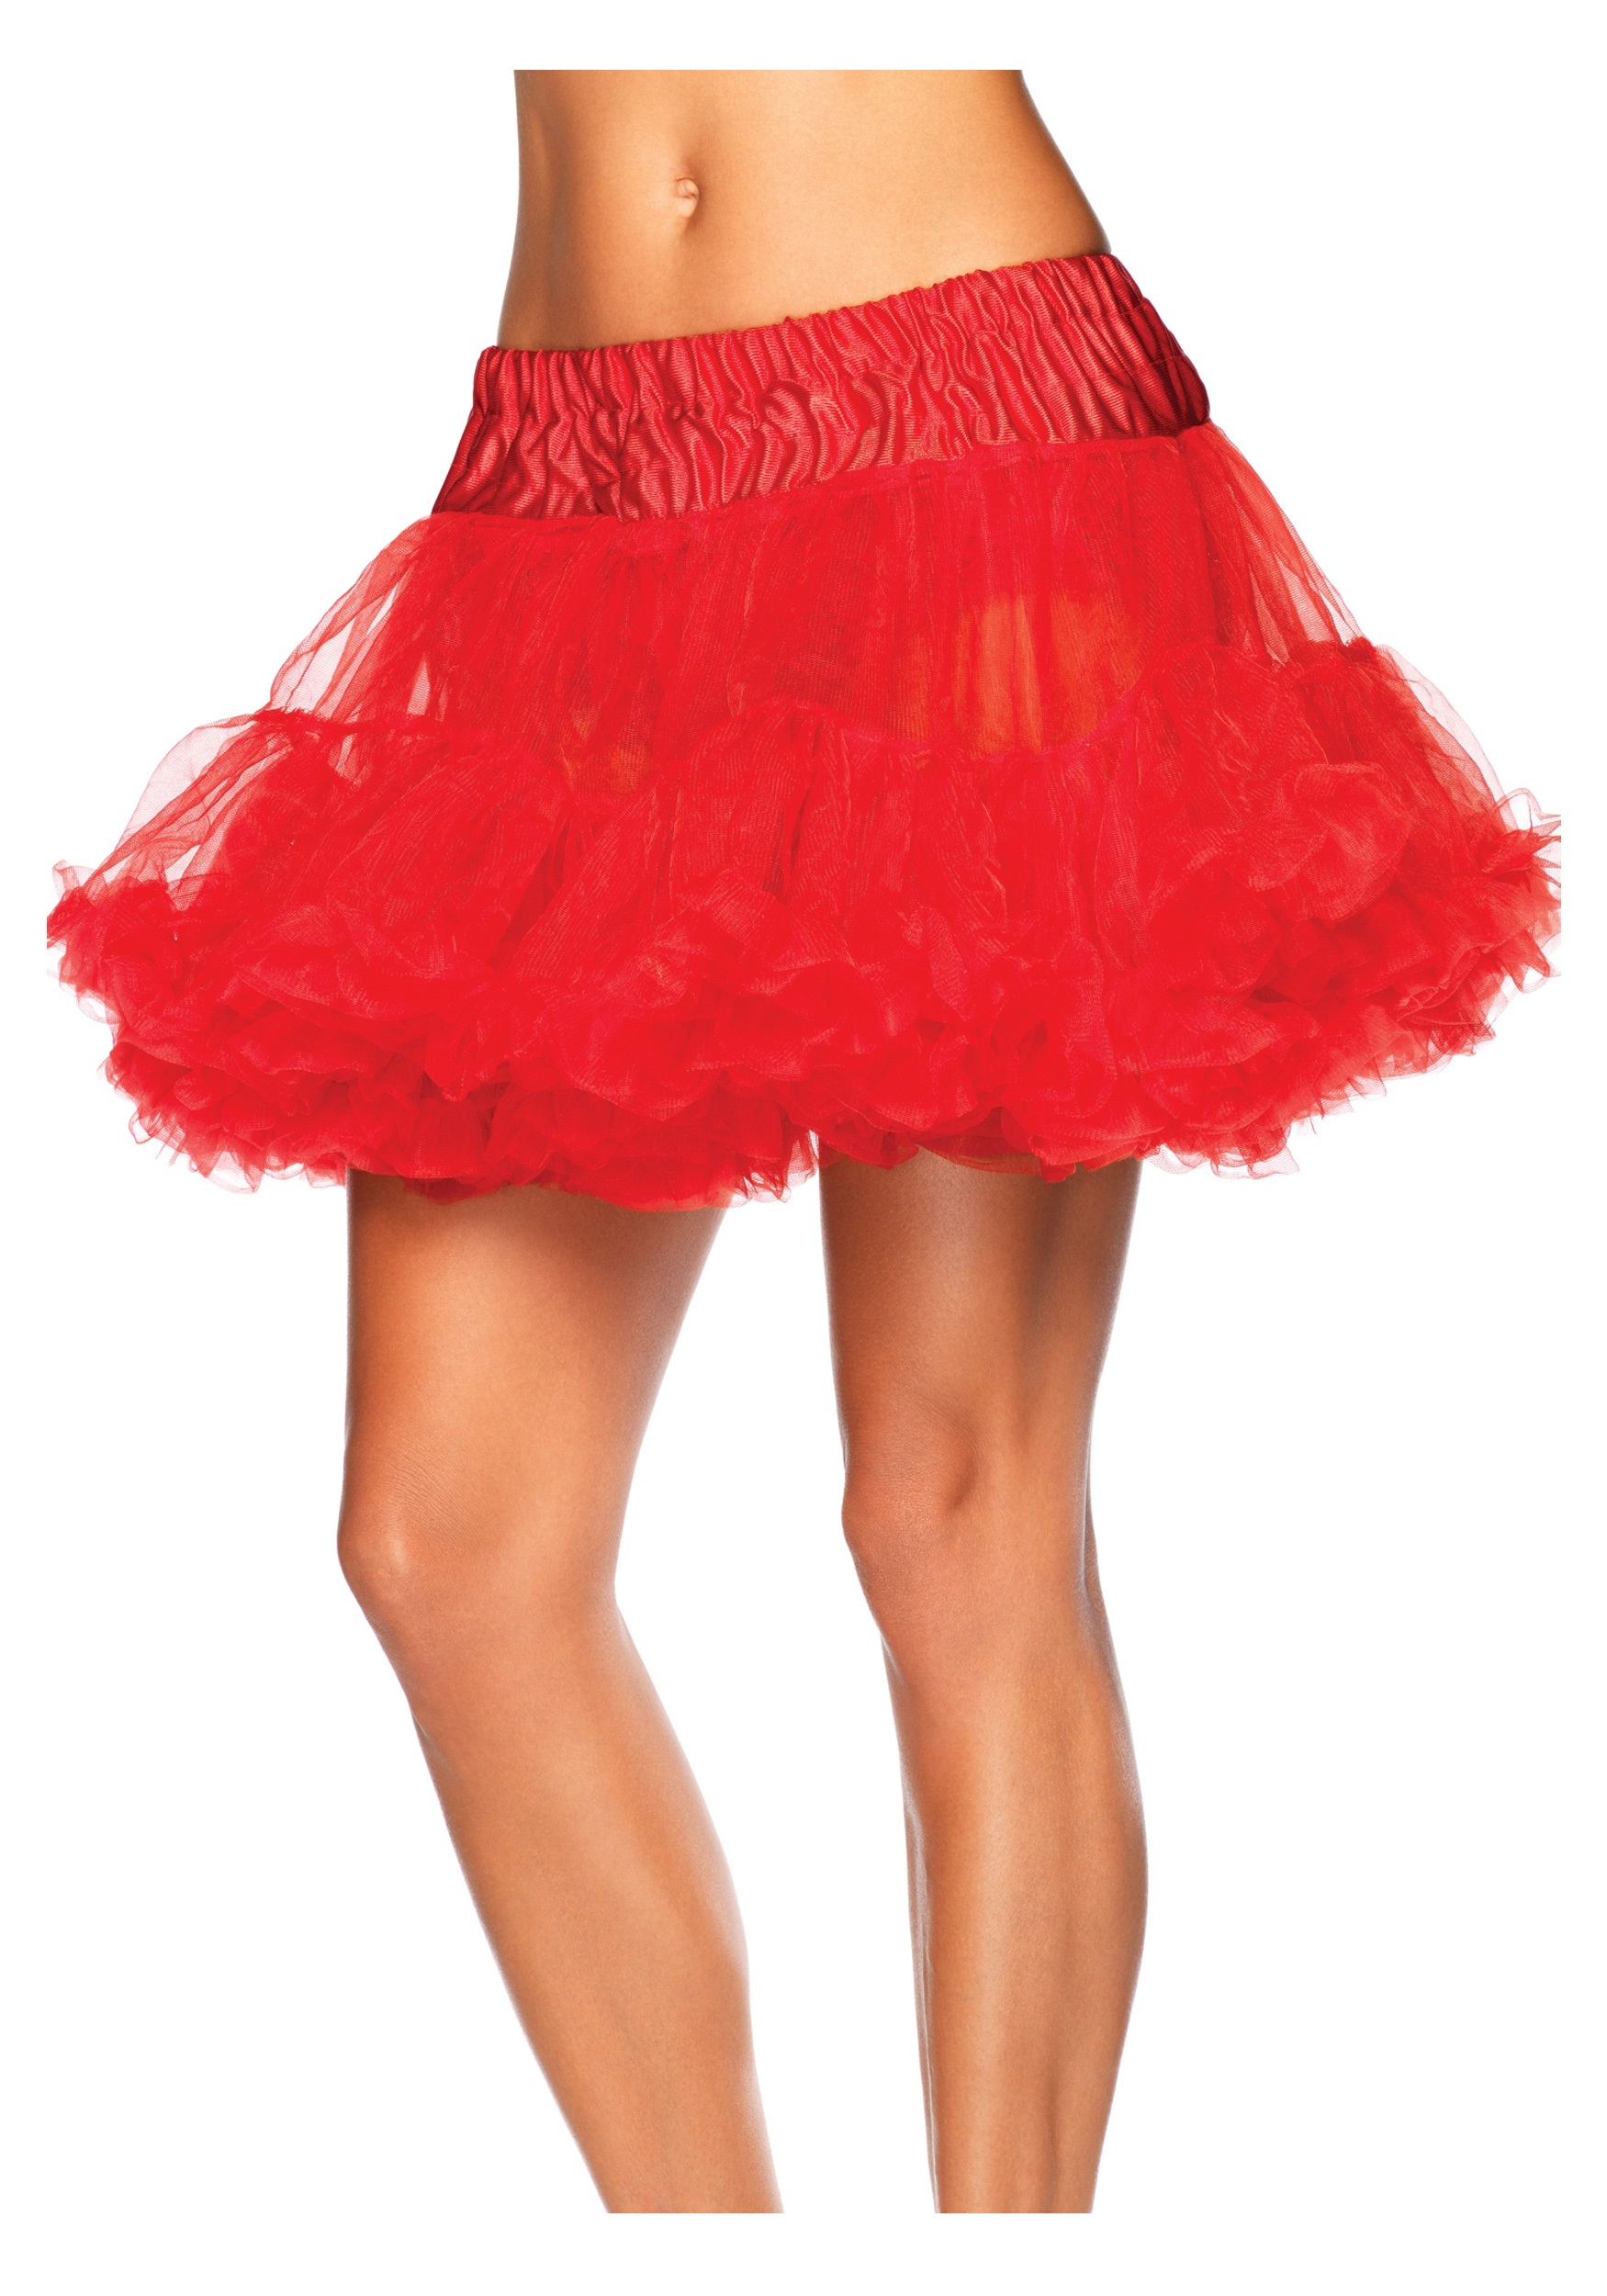 Looking for Wedding Tulle Skirt Slips? With a super price and cheap and fast shipping, membhobbdownload-zy.ga is the best place shop Wedding Tulle Skirt Slips - any problems and questions will be sorted quickly by the best customer service online.